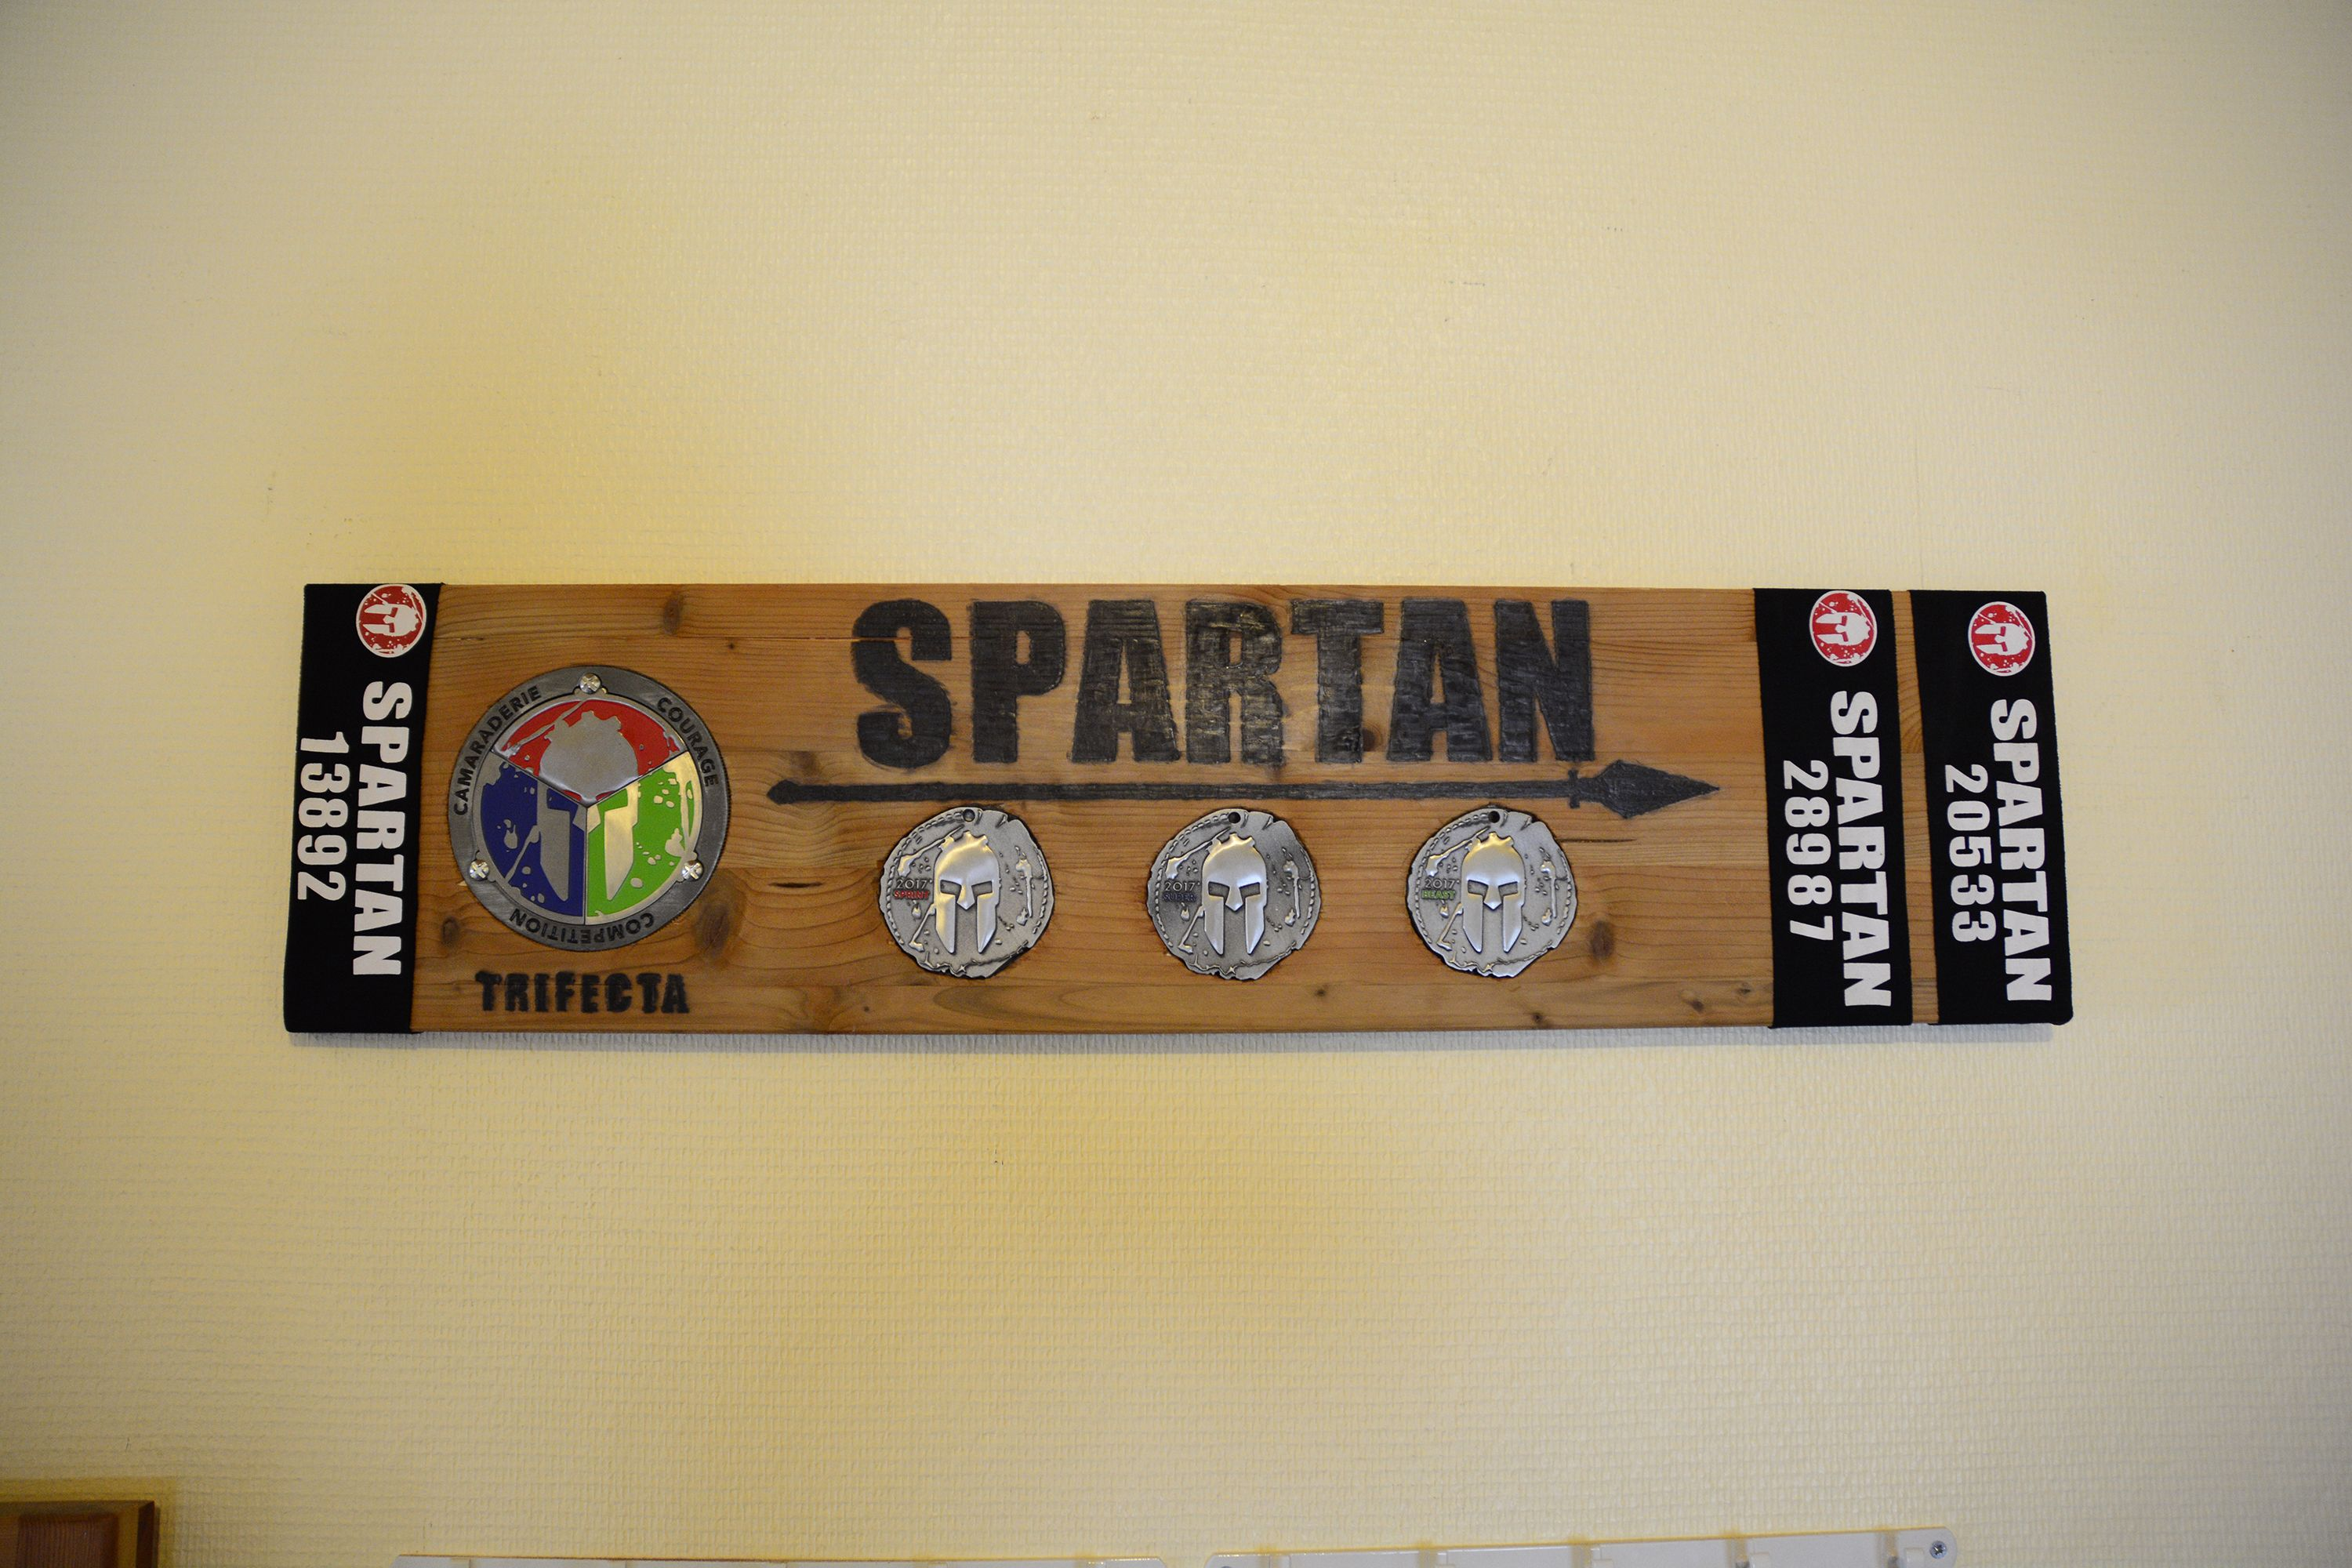 Made For Spartan Medals For Spartan Race Trifecta Race Medal Display Trifecta